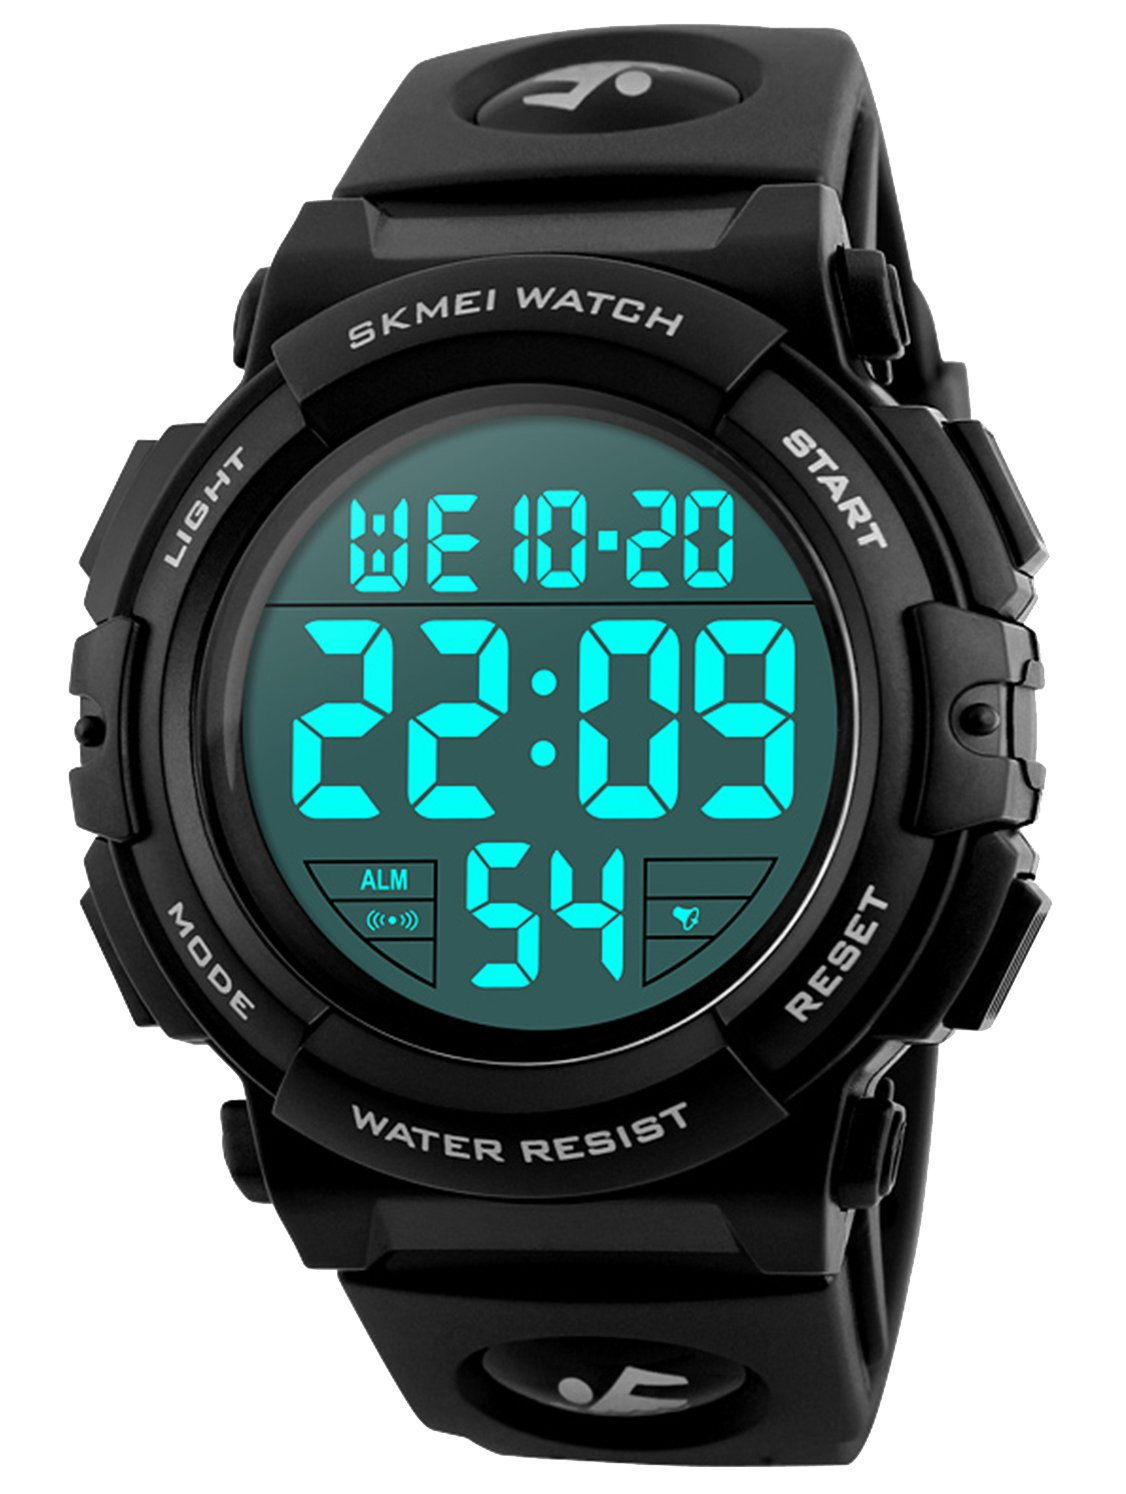 Men's Digital Sports Watch LED Military 50M Waterproof Watches Outdoor Electronic Army Alarm Stopwatch White